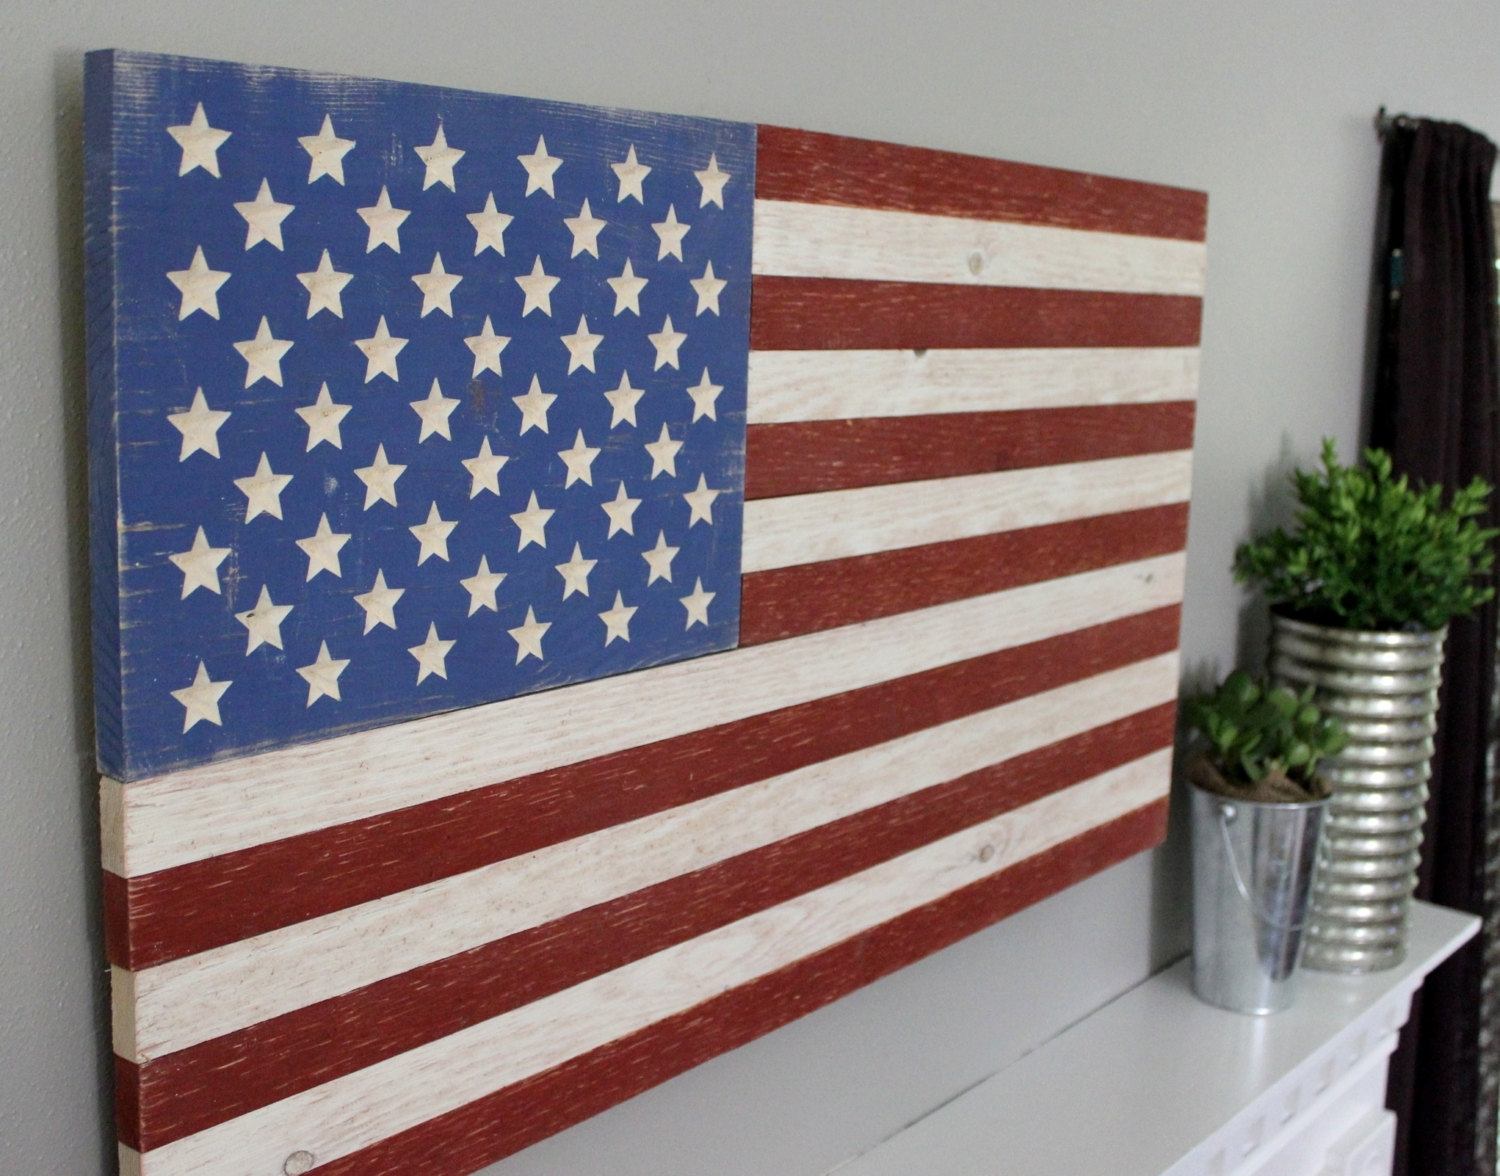 Rustic Wooden American Flag Superb American Flag Wall Art – Prix Throughout Latest Wooden American Flag Wall Art (Gallery 9 of 20)